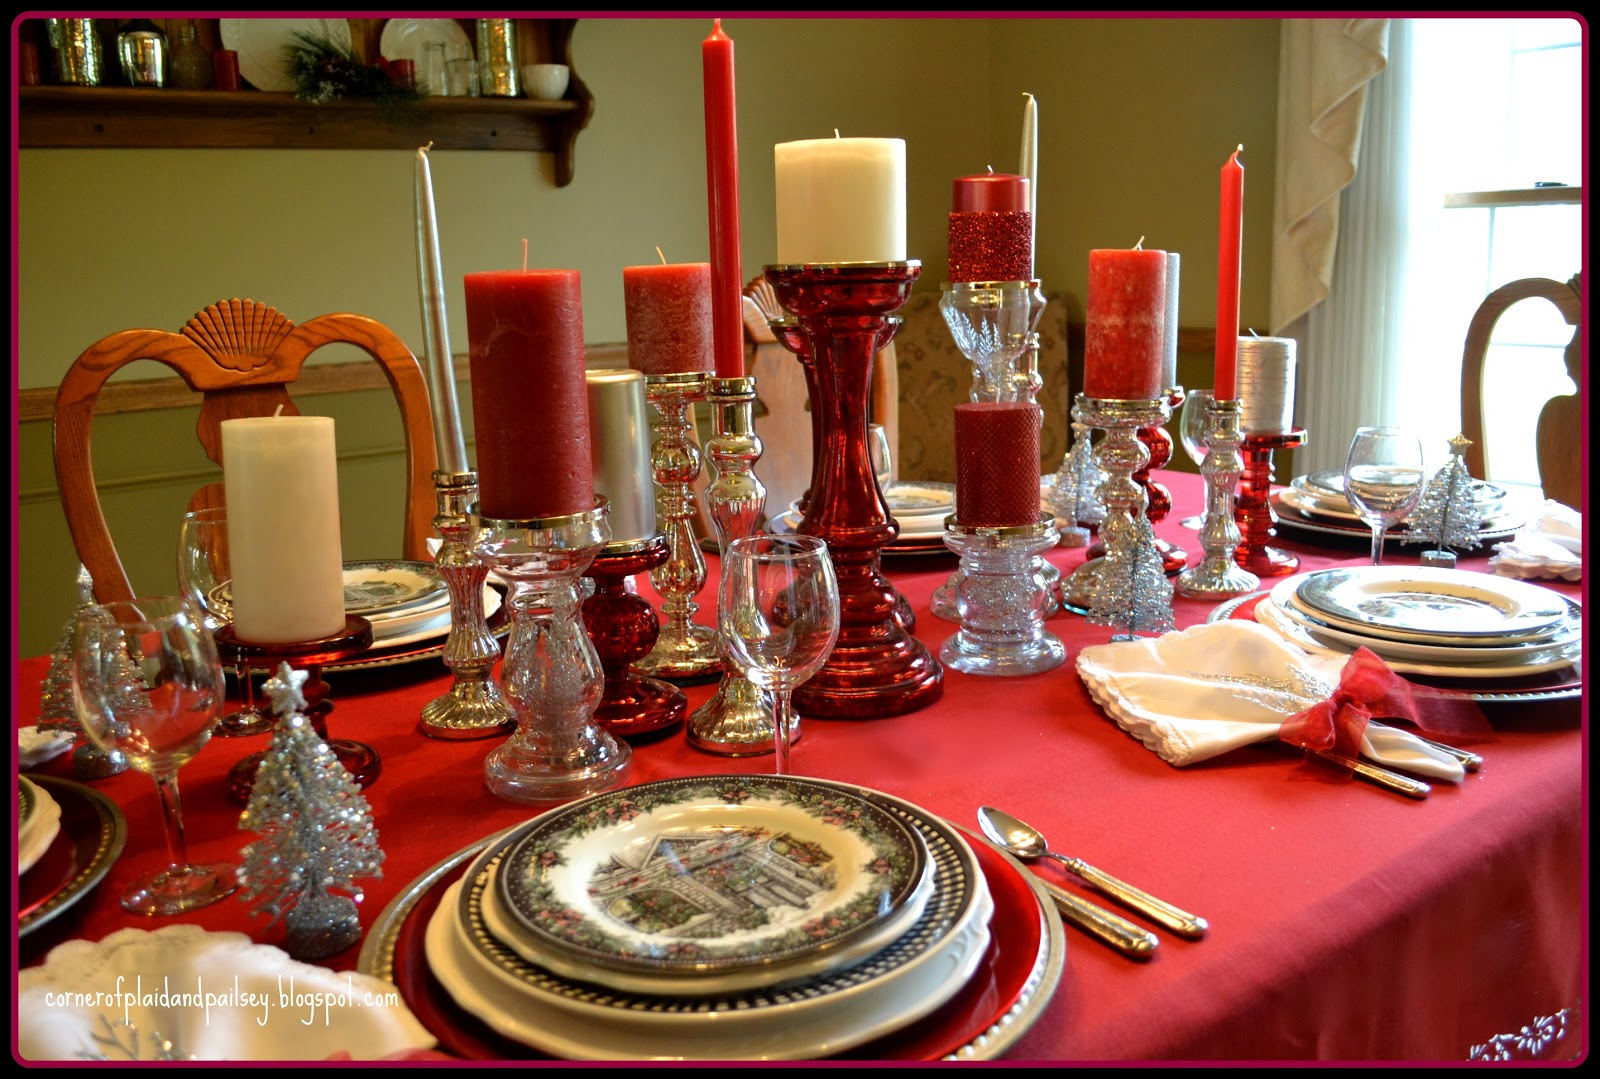 33 Red And Silver Table Setting Ideas for Christmas | Table ...